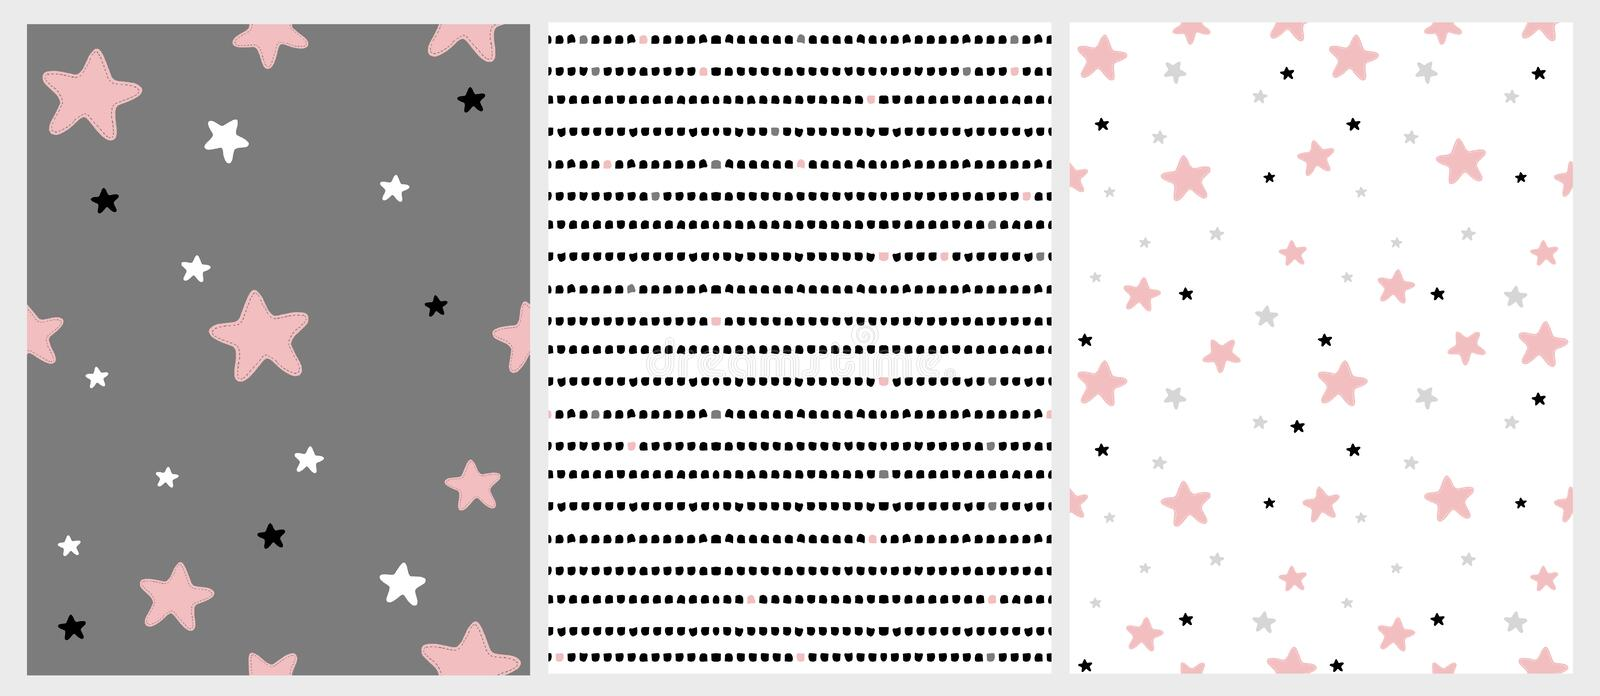 Cute Hand Drawn Stars and Stripes Irregular Vector Patterns. Pink, Black, White and Light Gray Stars. White and Dark Gray Background. Simple Infantile Design stock illustration